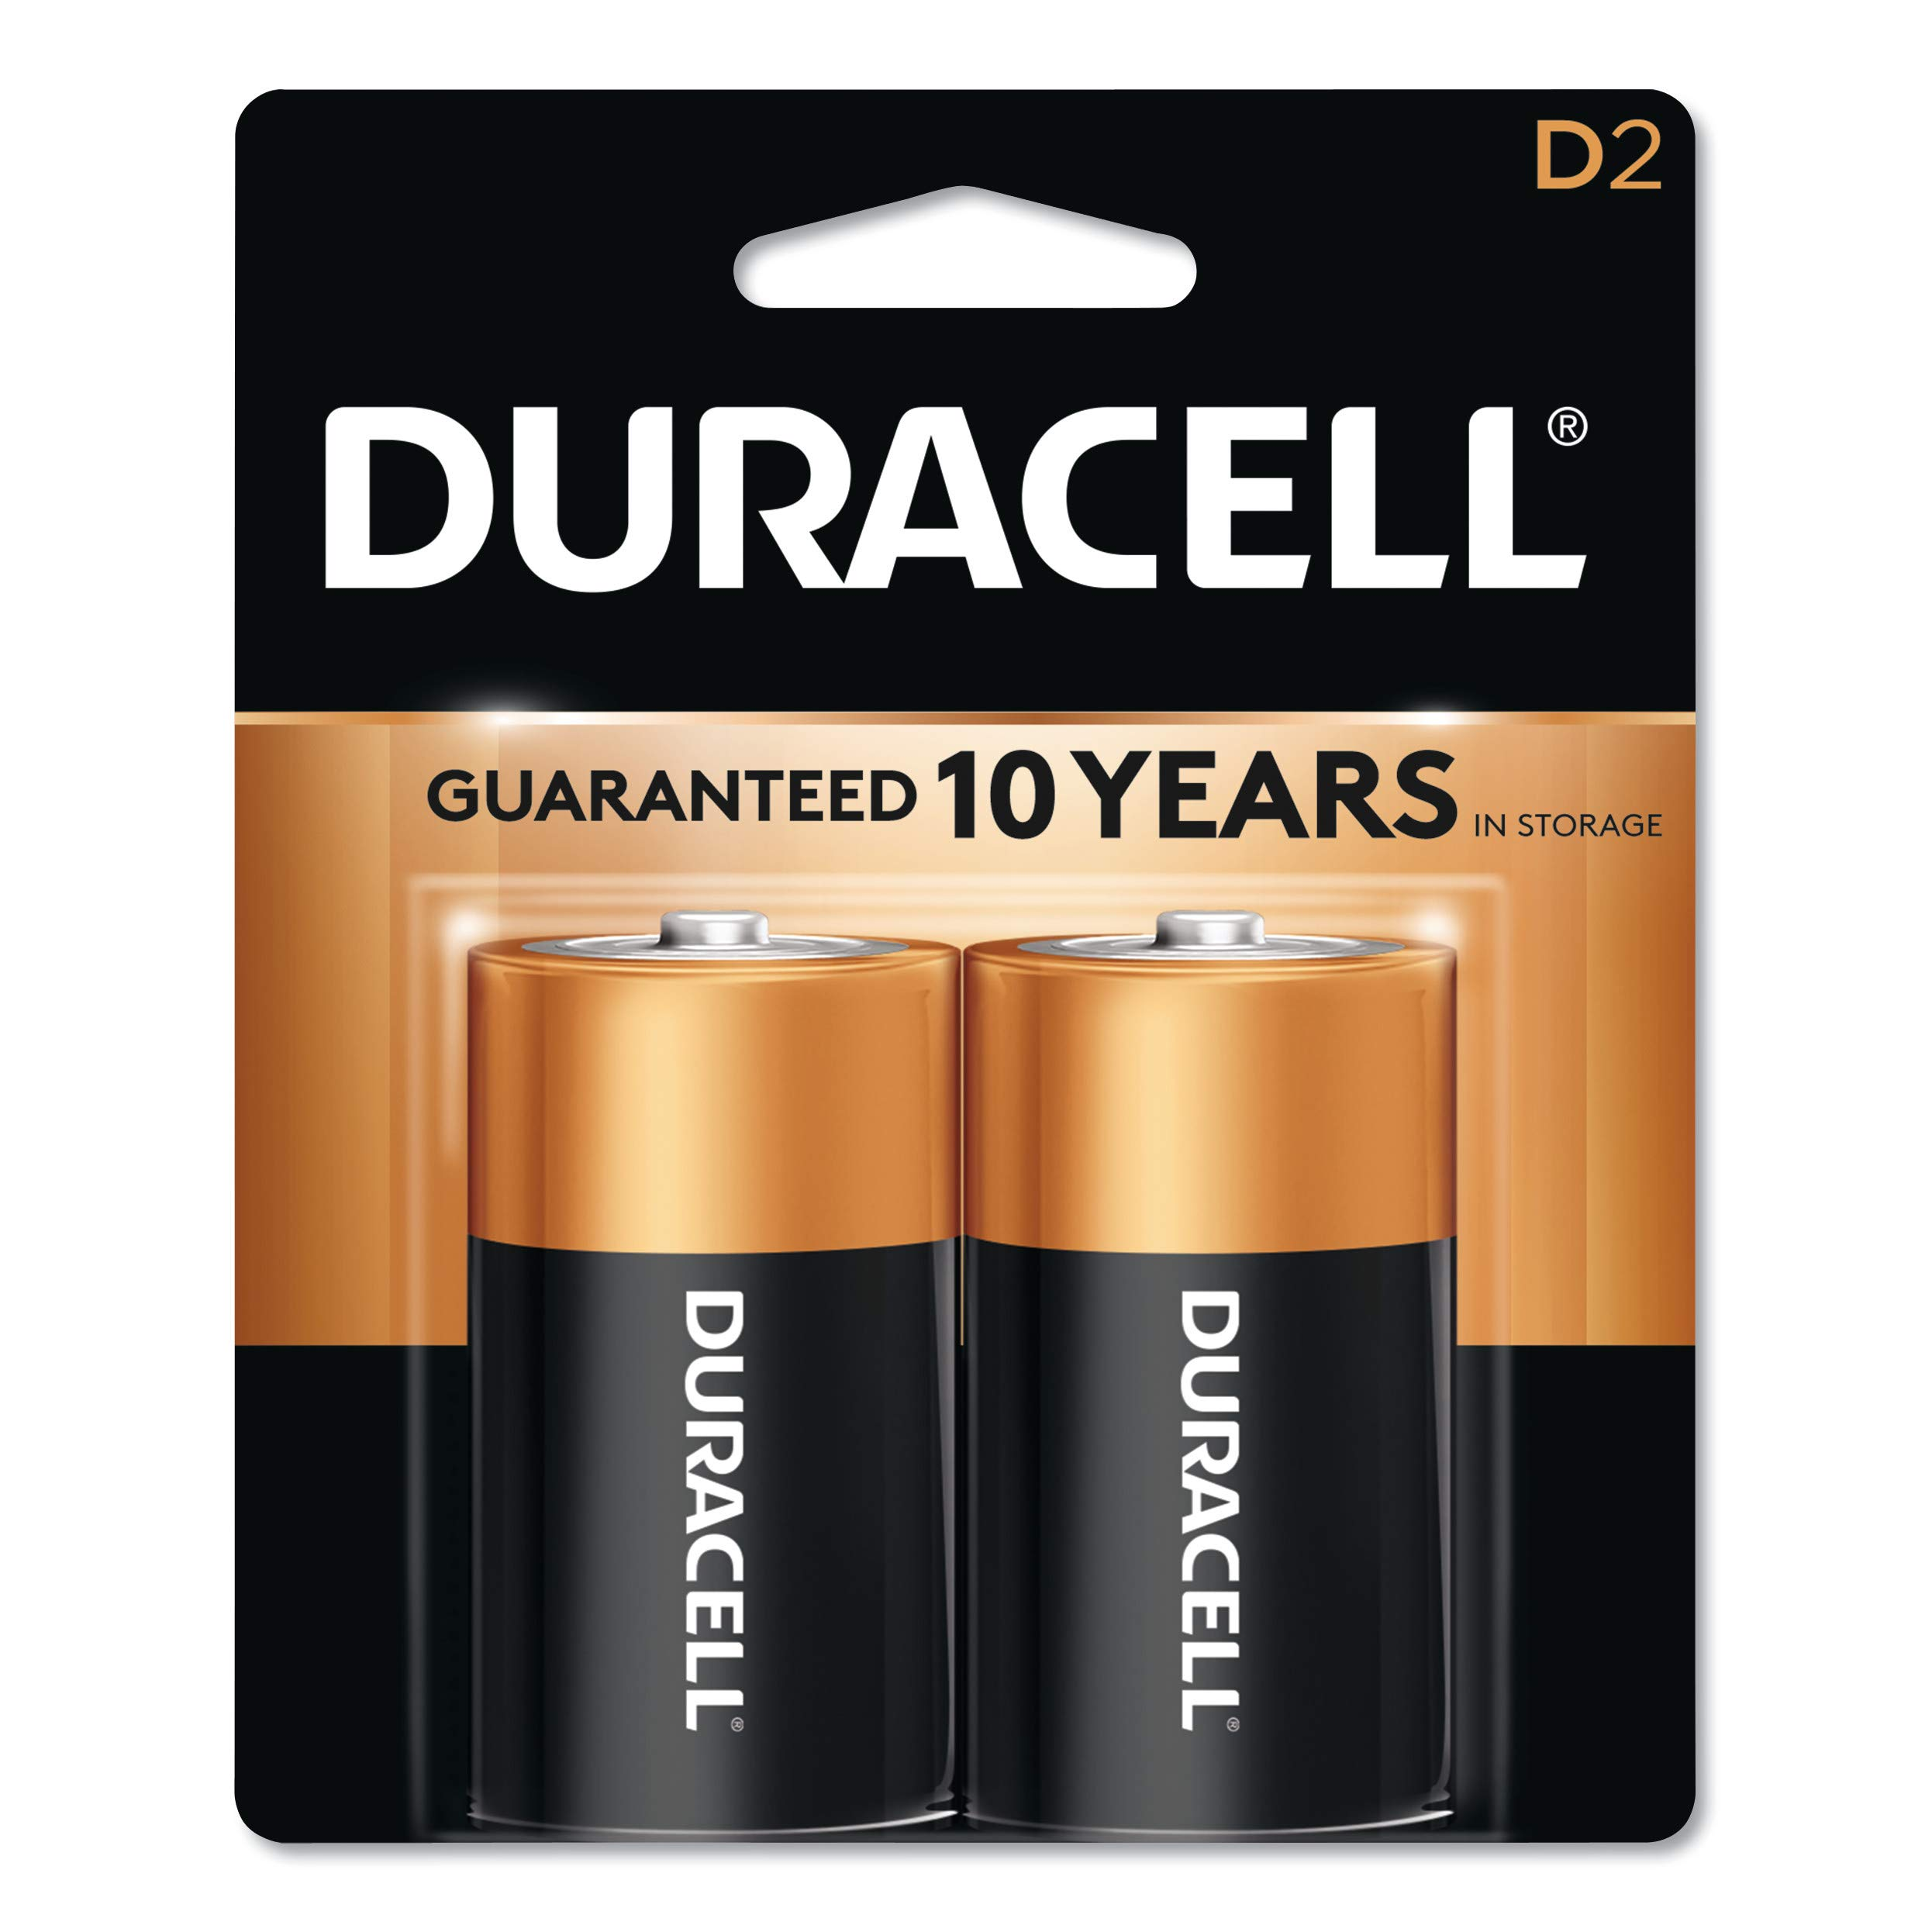 Duracell - CopperTop D Alkaline Batteries - long lasting, all-purpose D battery for household and business - 2 count